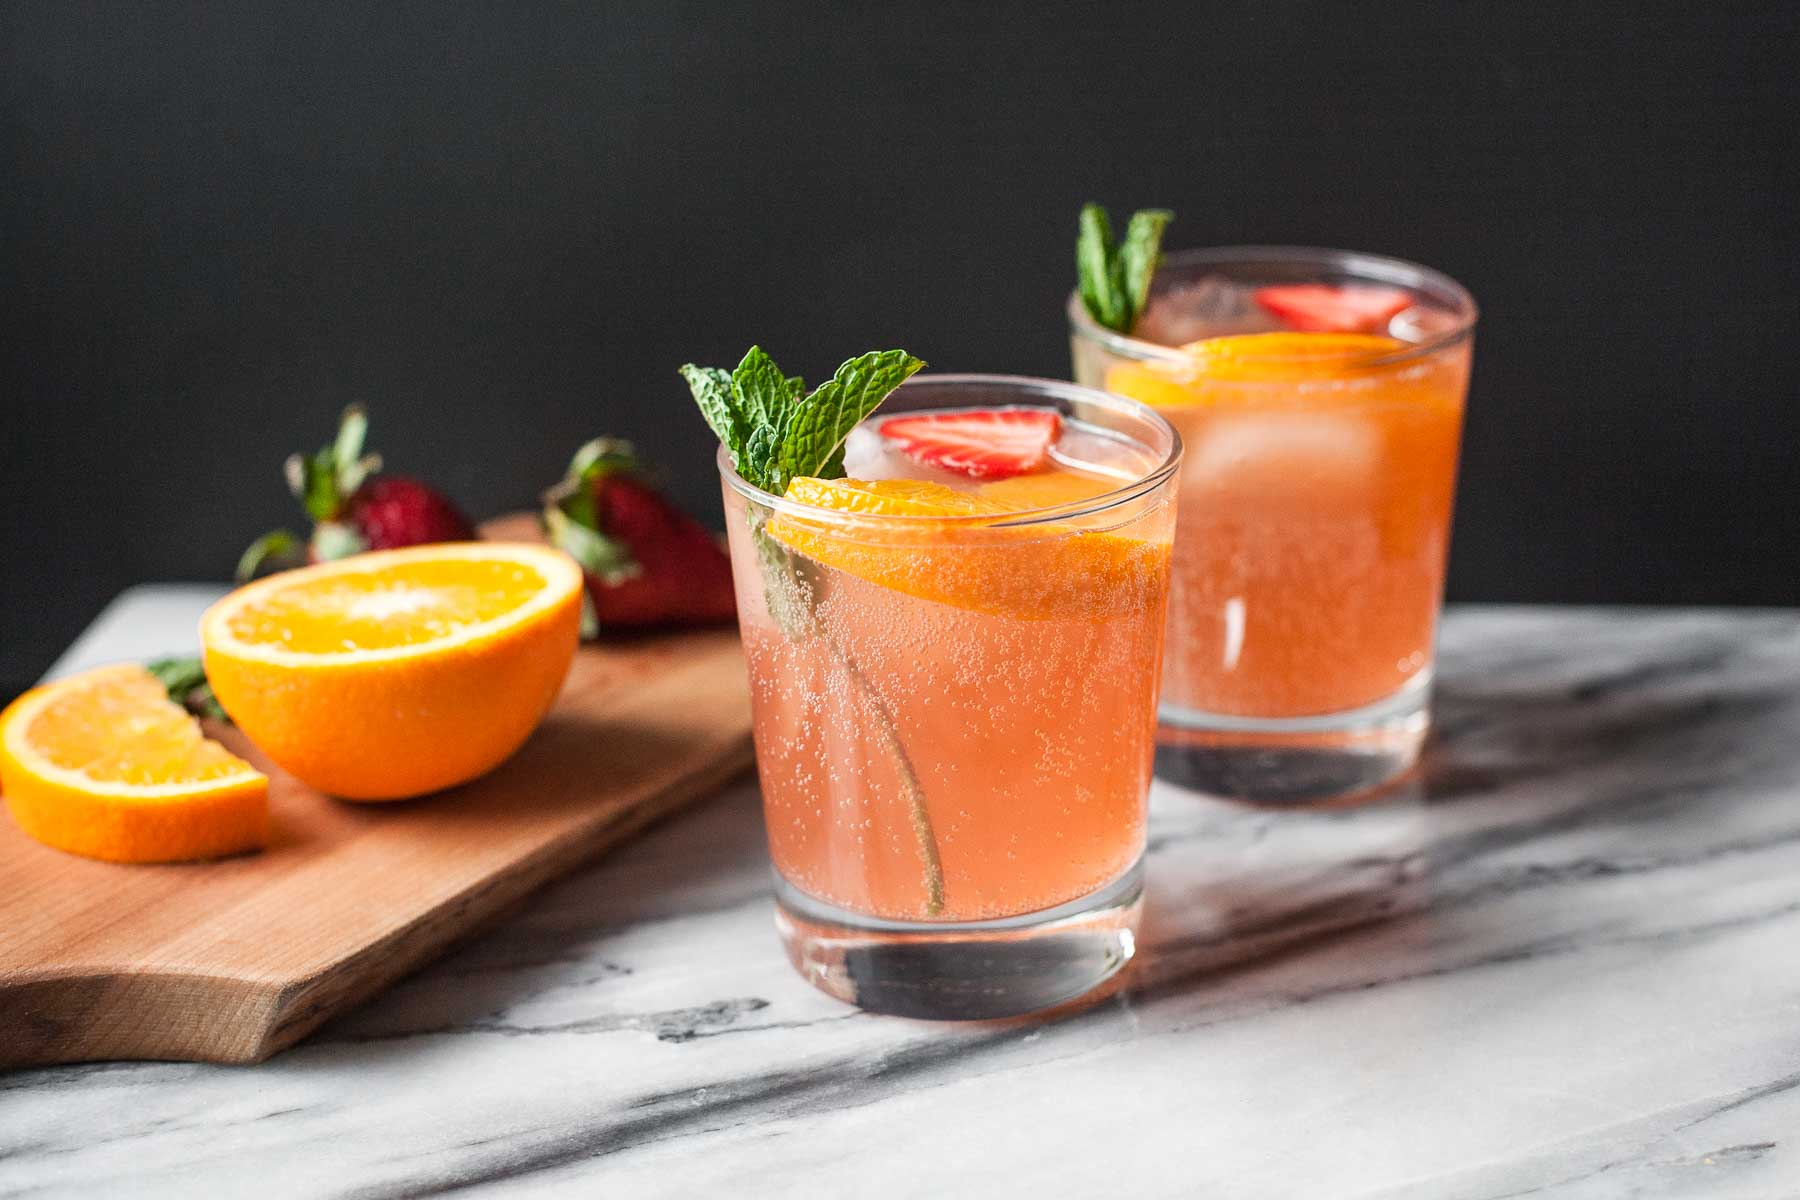 Strawberry Orange Ginger Fizz (Paleo, Refined sugar free)